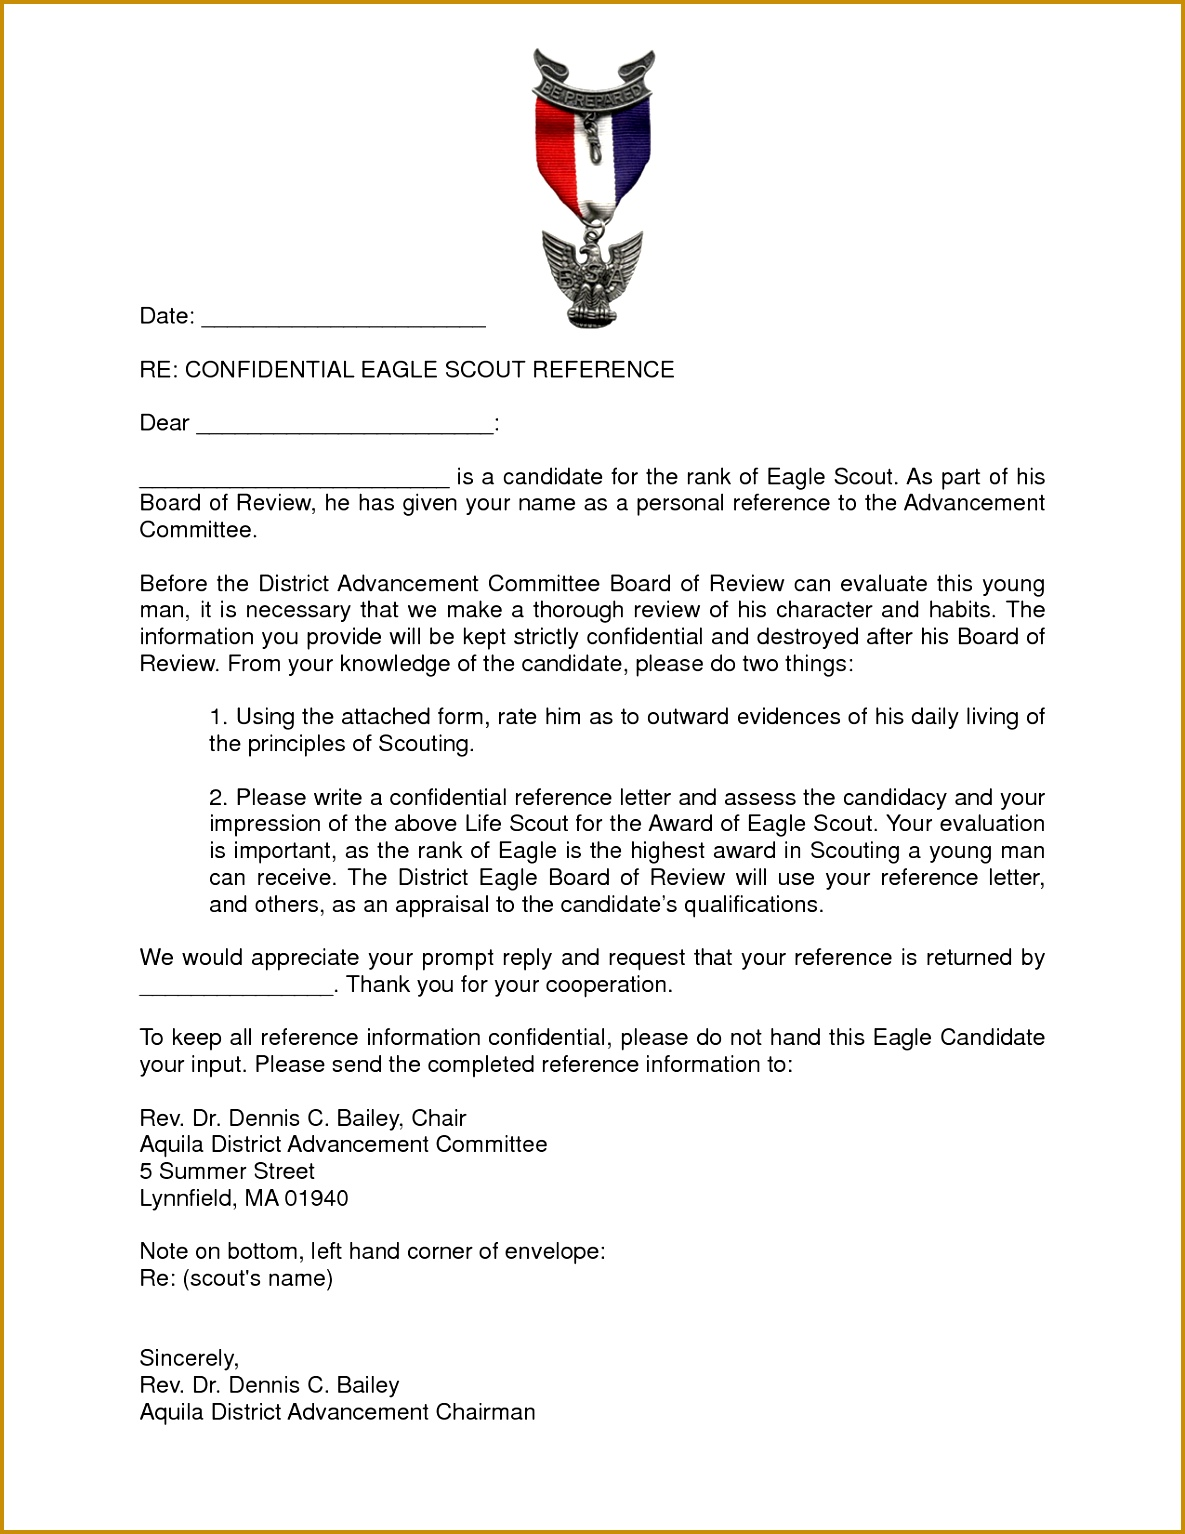 eagle scout re mendation reference letter 15341185